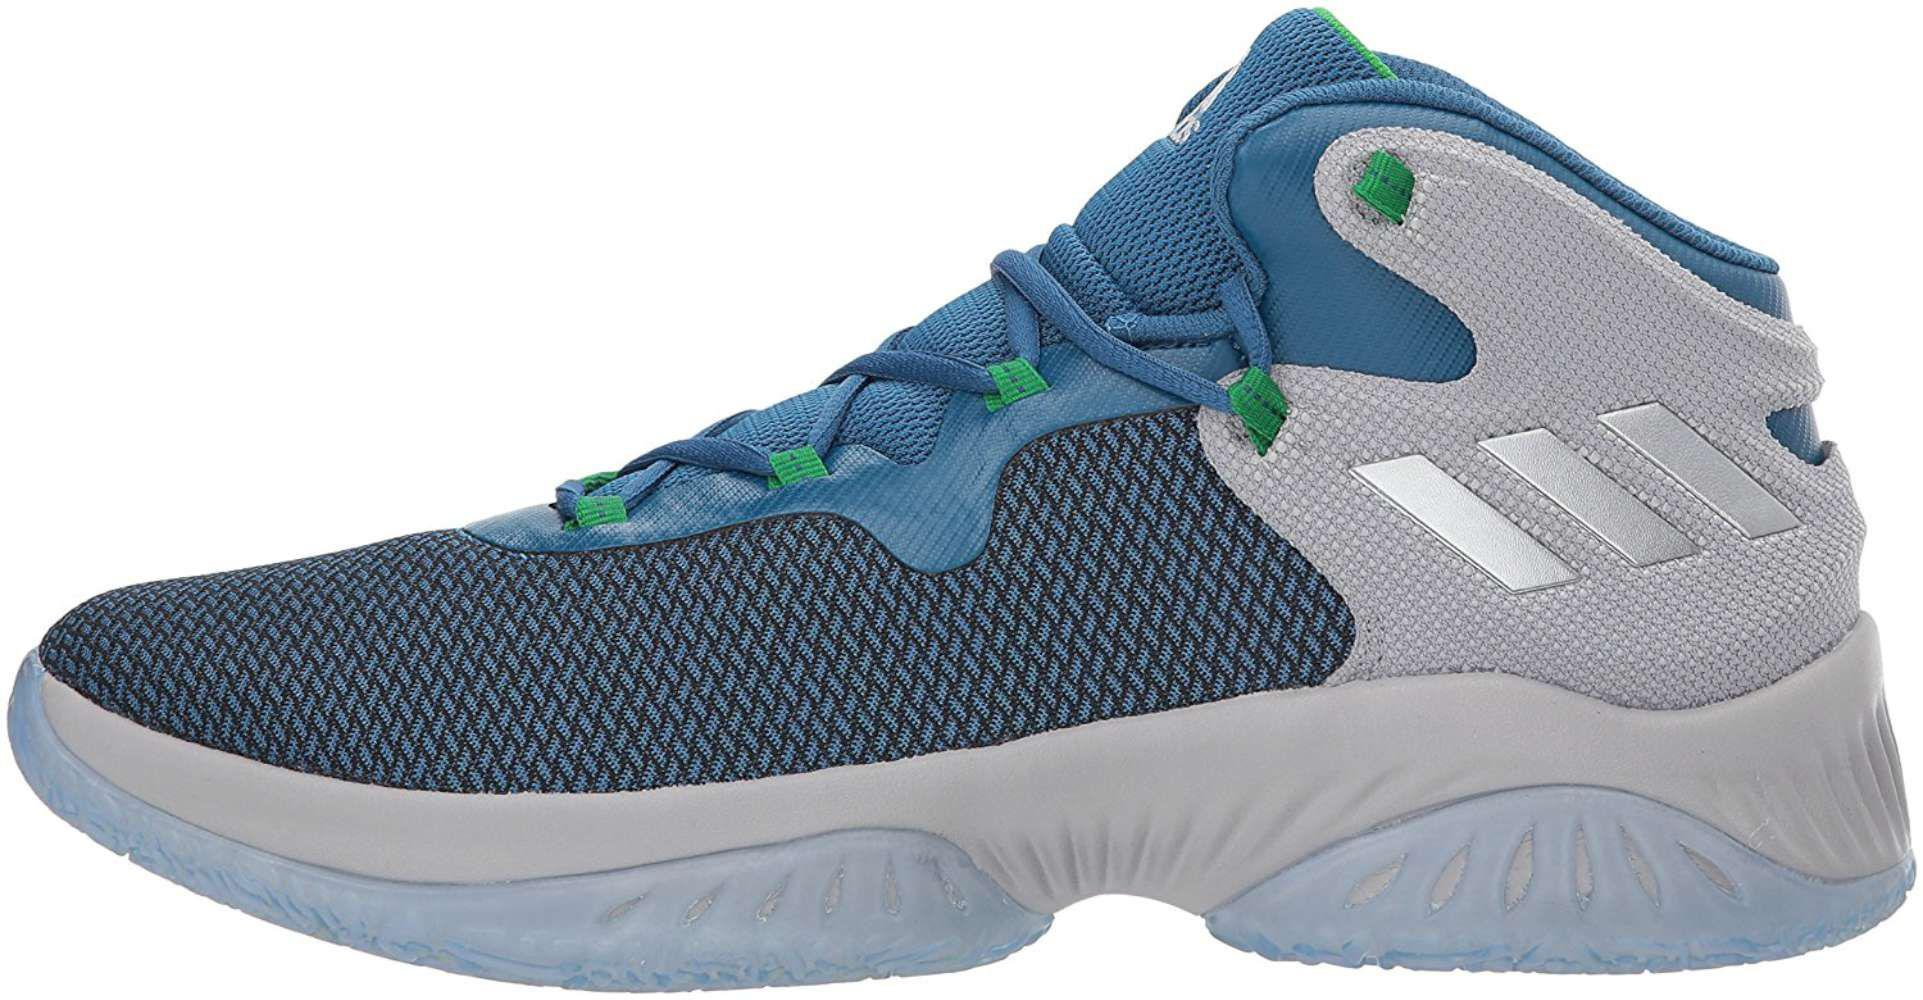 76a0e31b7ab5 Lyst - Adidas Mens Explosive Bounce Fabric Low Top Lace Up ...